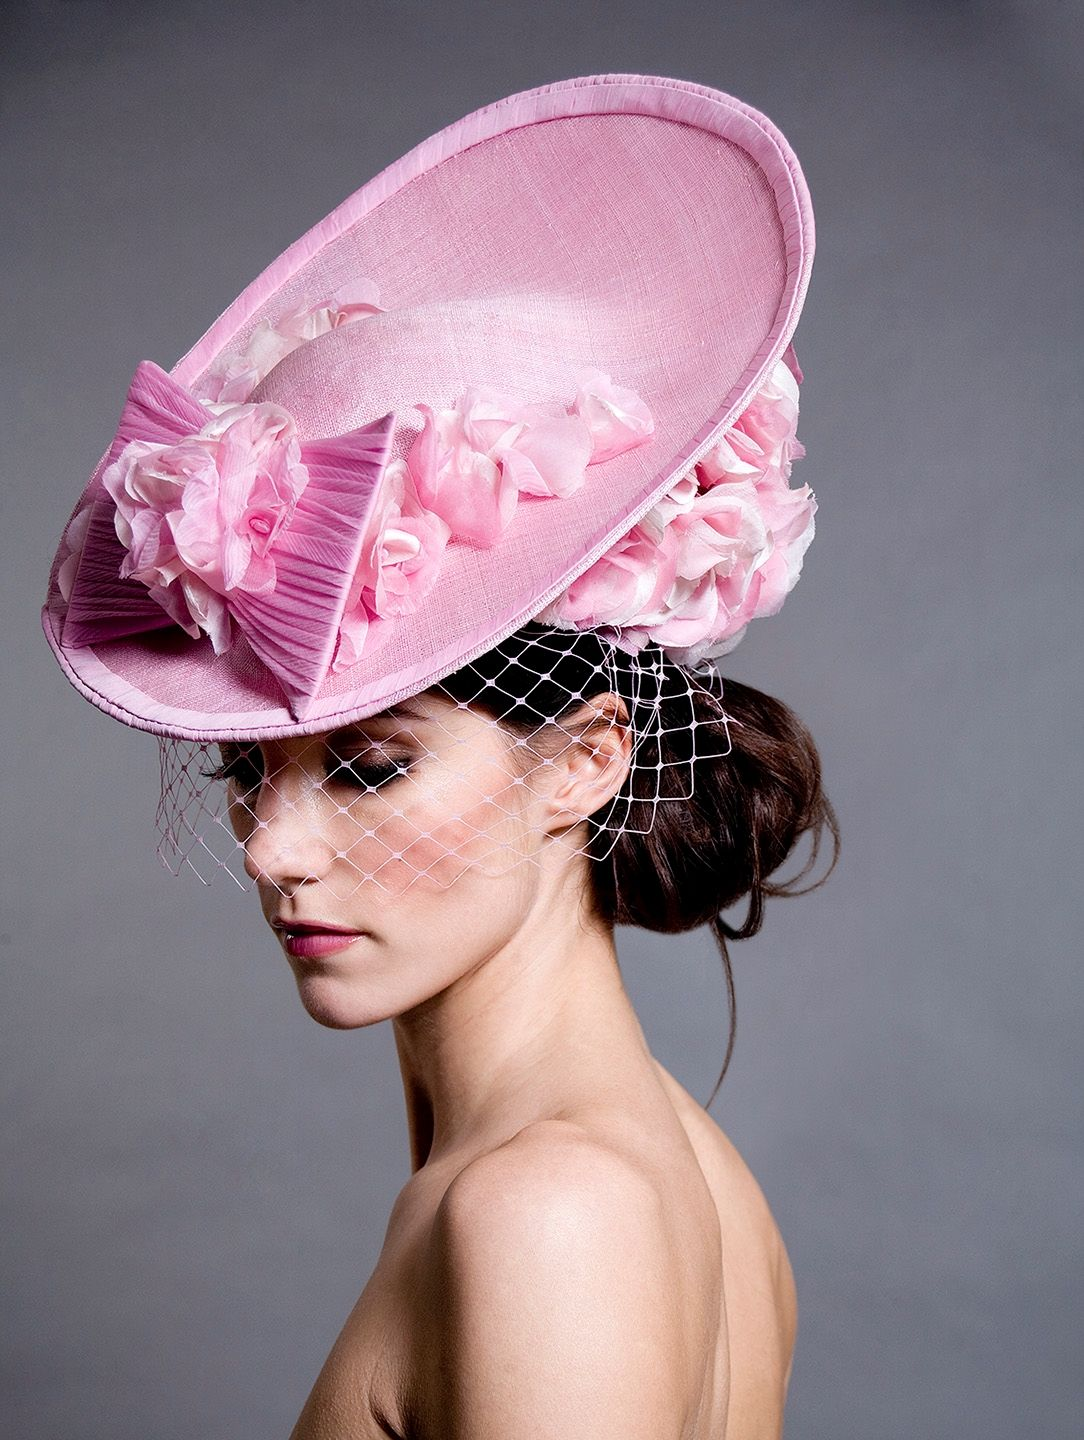 Floral Bouquet - Couture Collections: Seasonal | Edwina Ibbotson Millinery